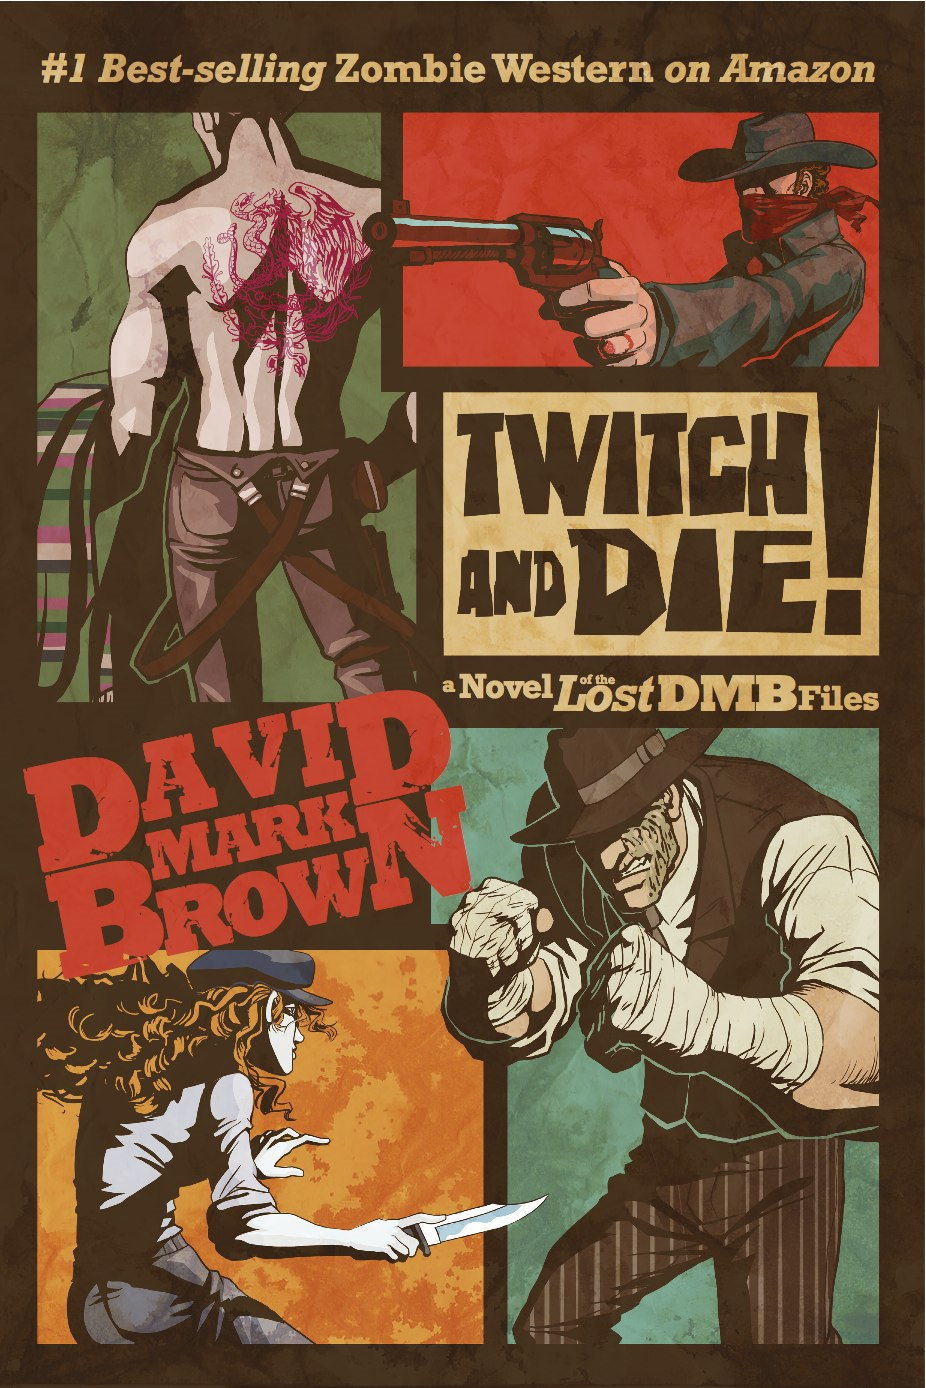 Twitch and Die! (Lost DMB Files #26) By: David Mark Brown